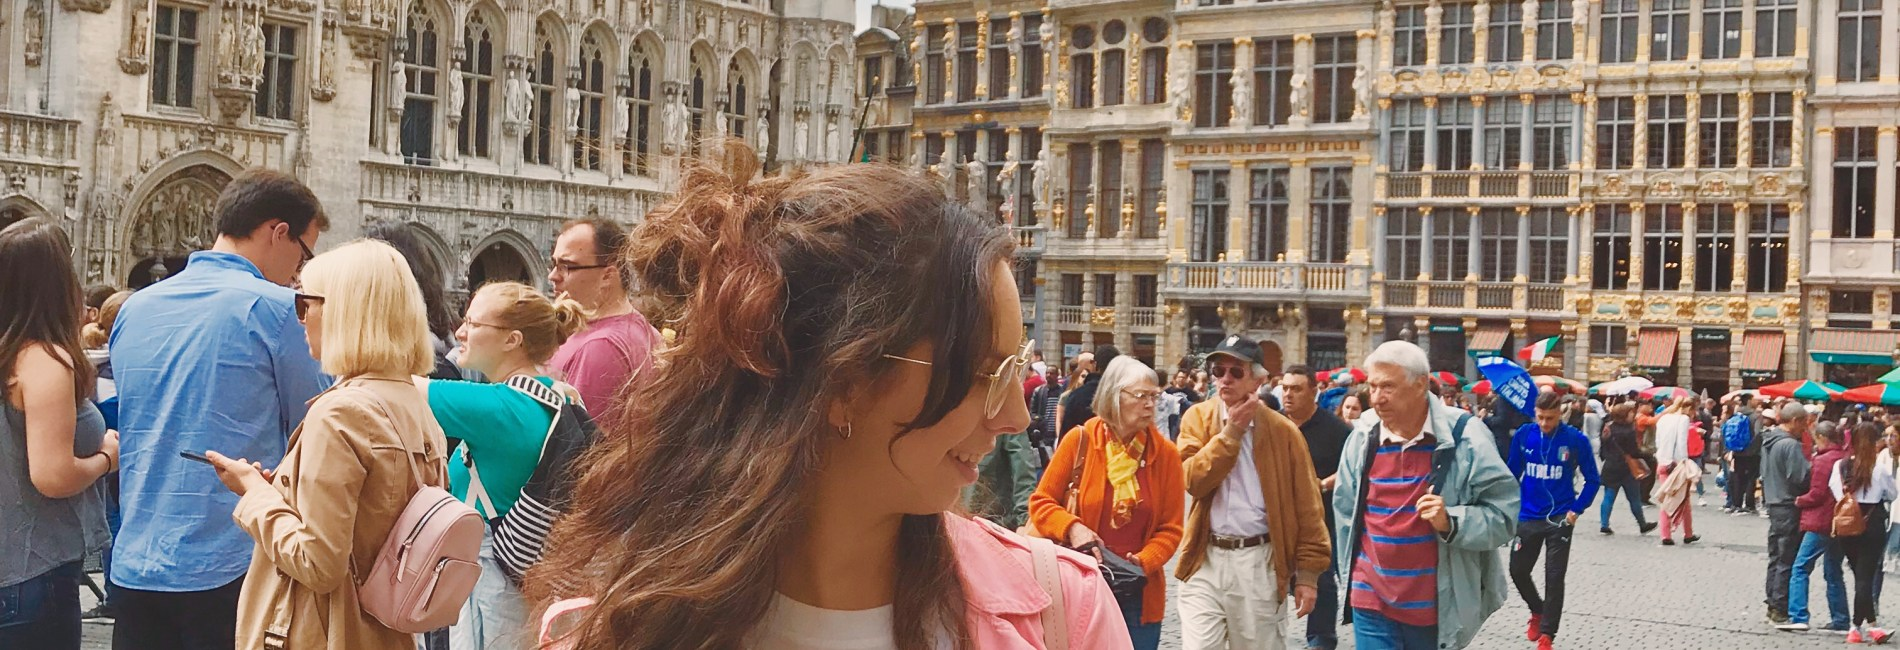 3 Day Itinerary To Belgium: Brussels, Bruges and Gent